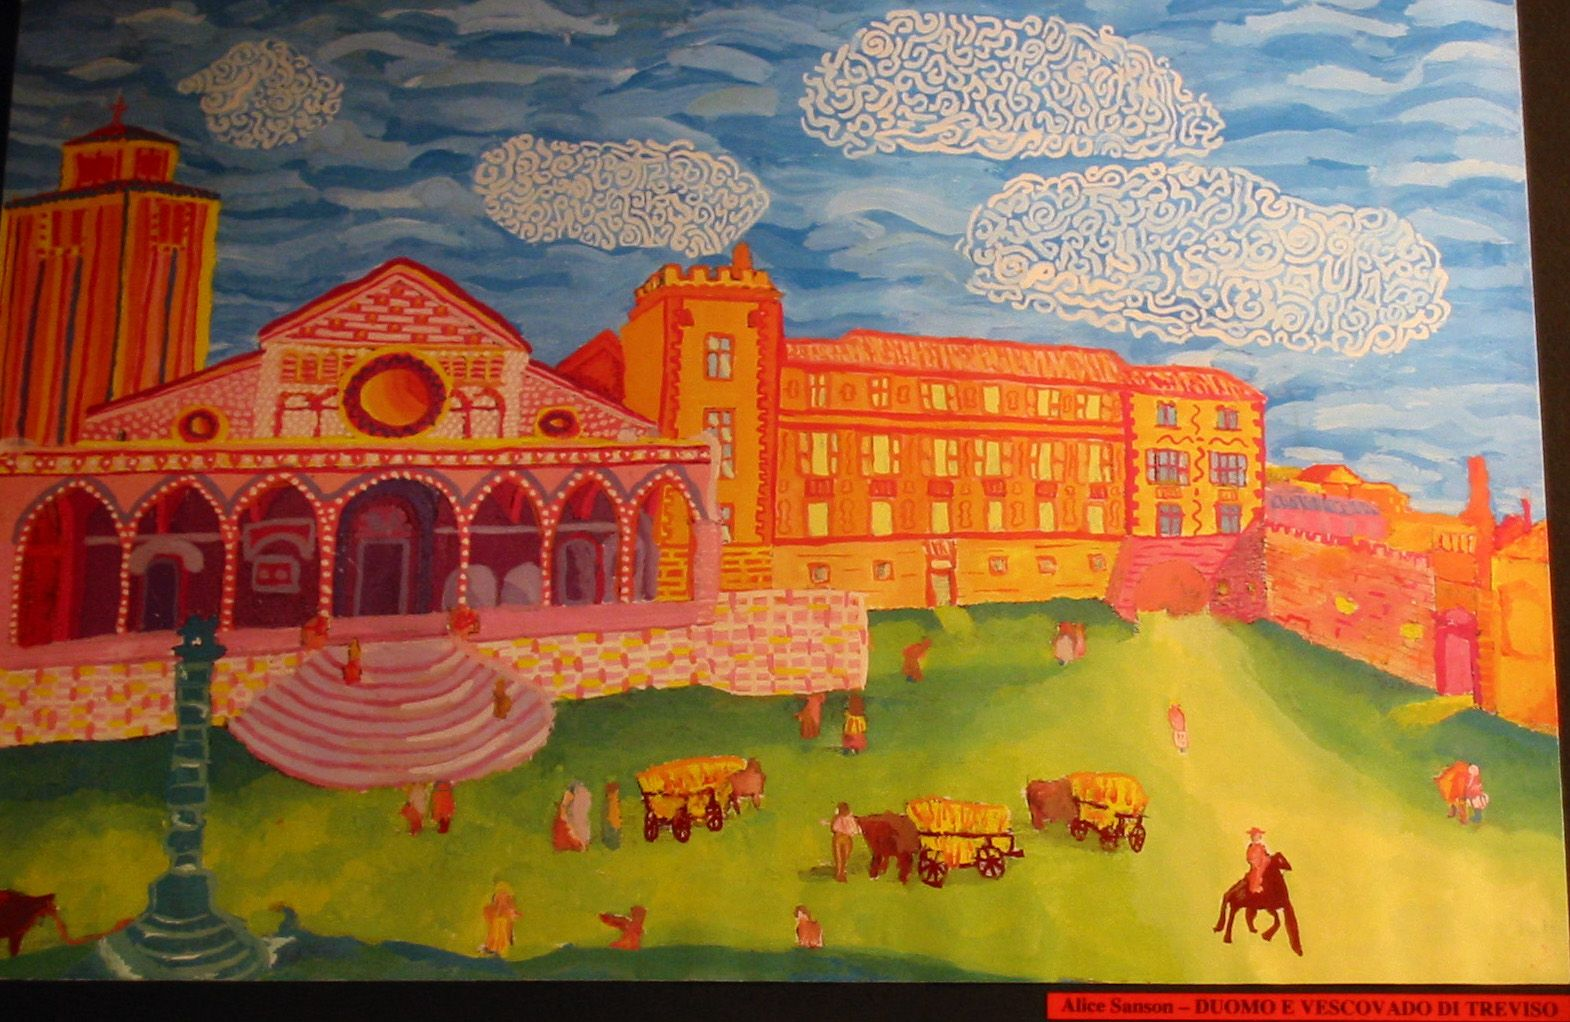 """""""Duomo e Vescov Ado di Treviso"""", by Alice Sanson a student of Prof. Fabio Sandrini at L. Coletti Middle School in Treviso, one of 95 communities in the Sister City twinning with Sarasota and Treviso Province in Italy. The art was displayed at the Hands of Heritage Fest at Robarts Arena in Sarasota in 2003"""